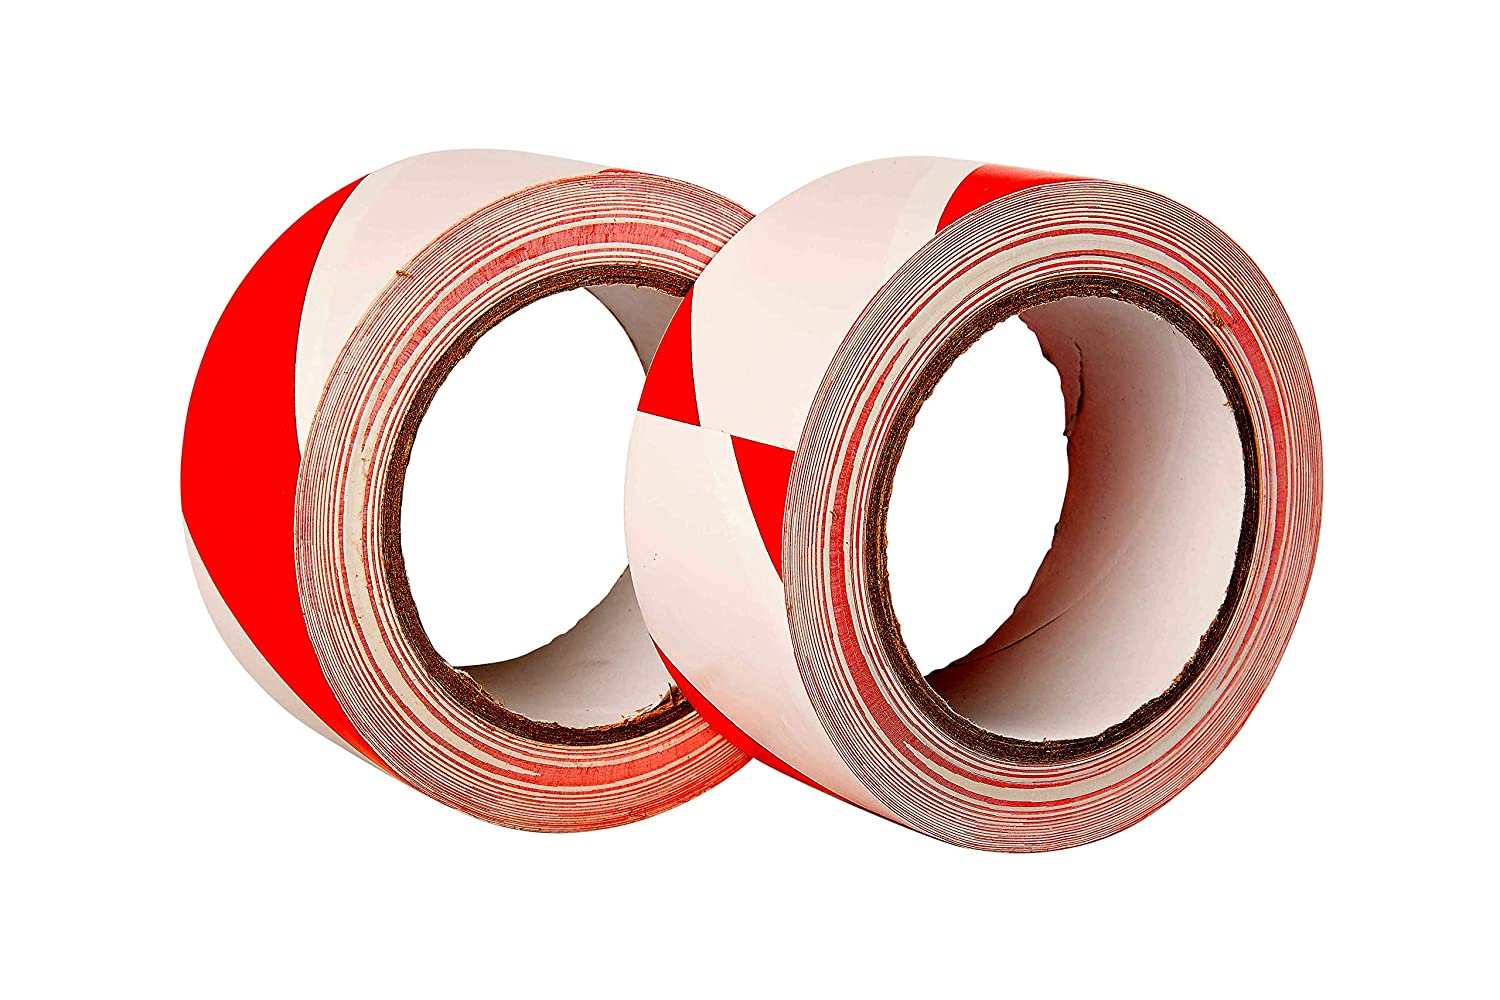 33m x 50mm 2 Rolls Premium Double Pack of Red//White Hazard Warning Tape Adhesive Marking Barrier Tape